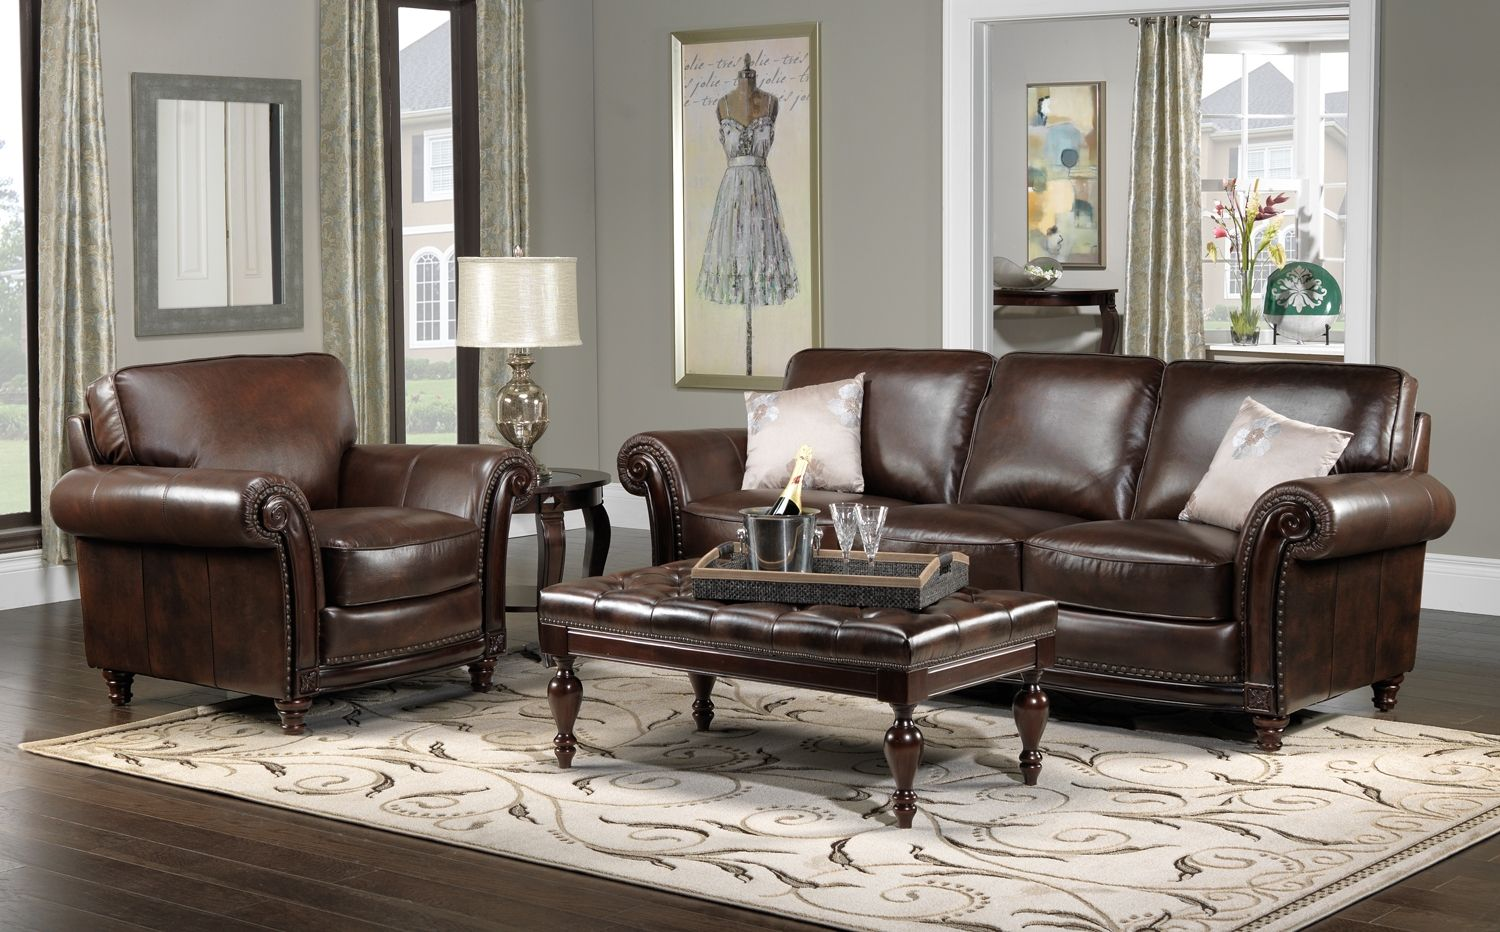 Dream house decor ideas for brown leather furniture gngkxz for Home decor sofa designs